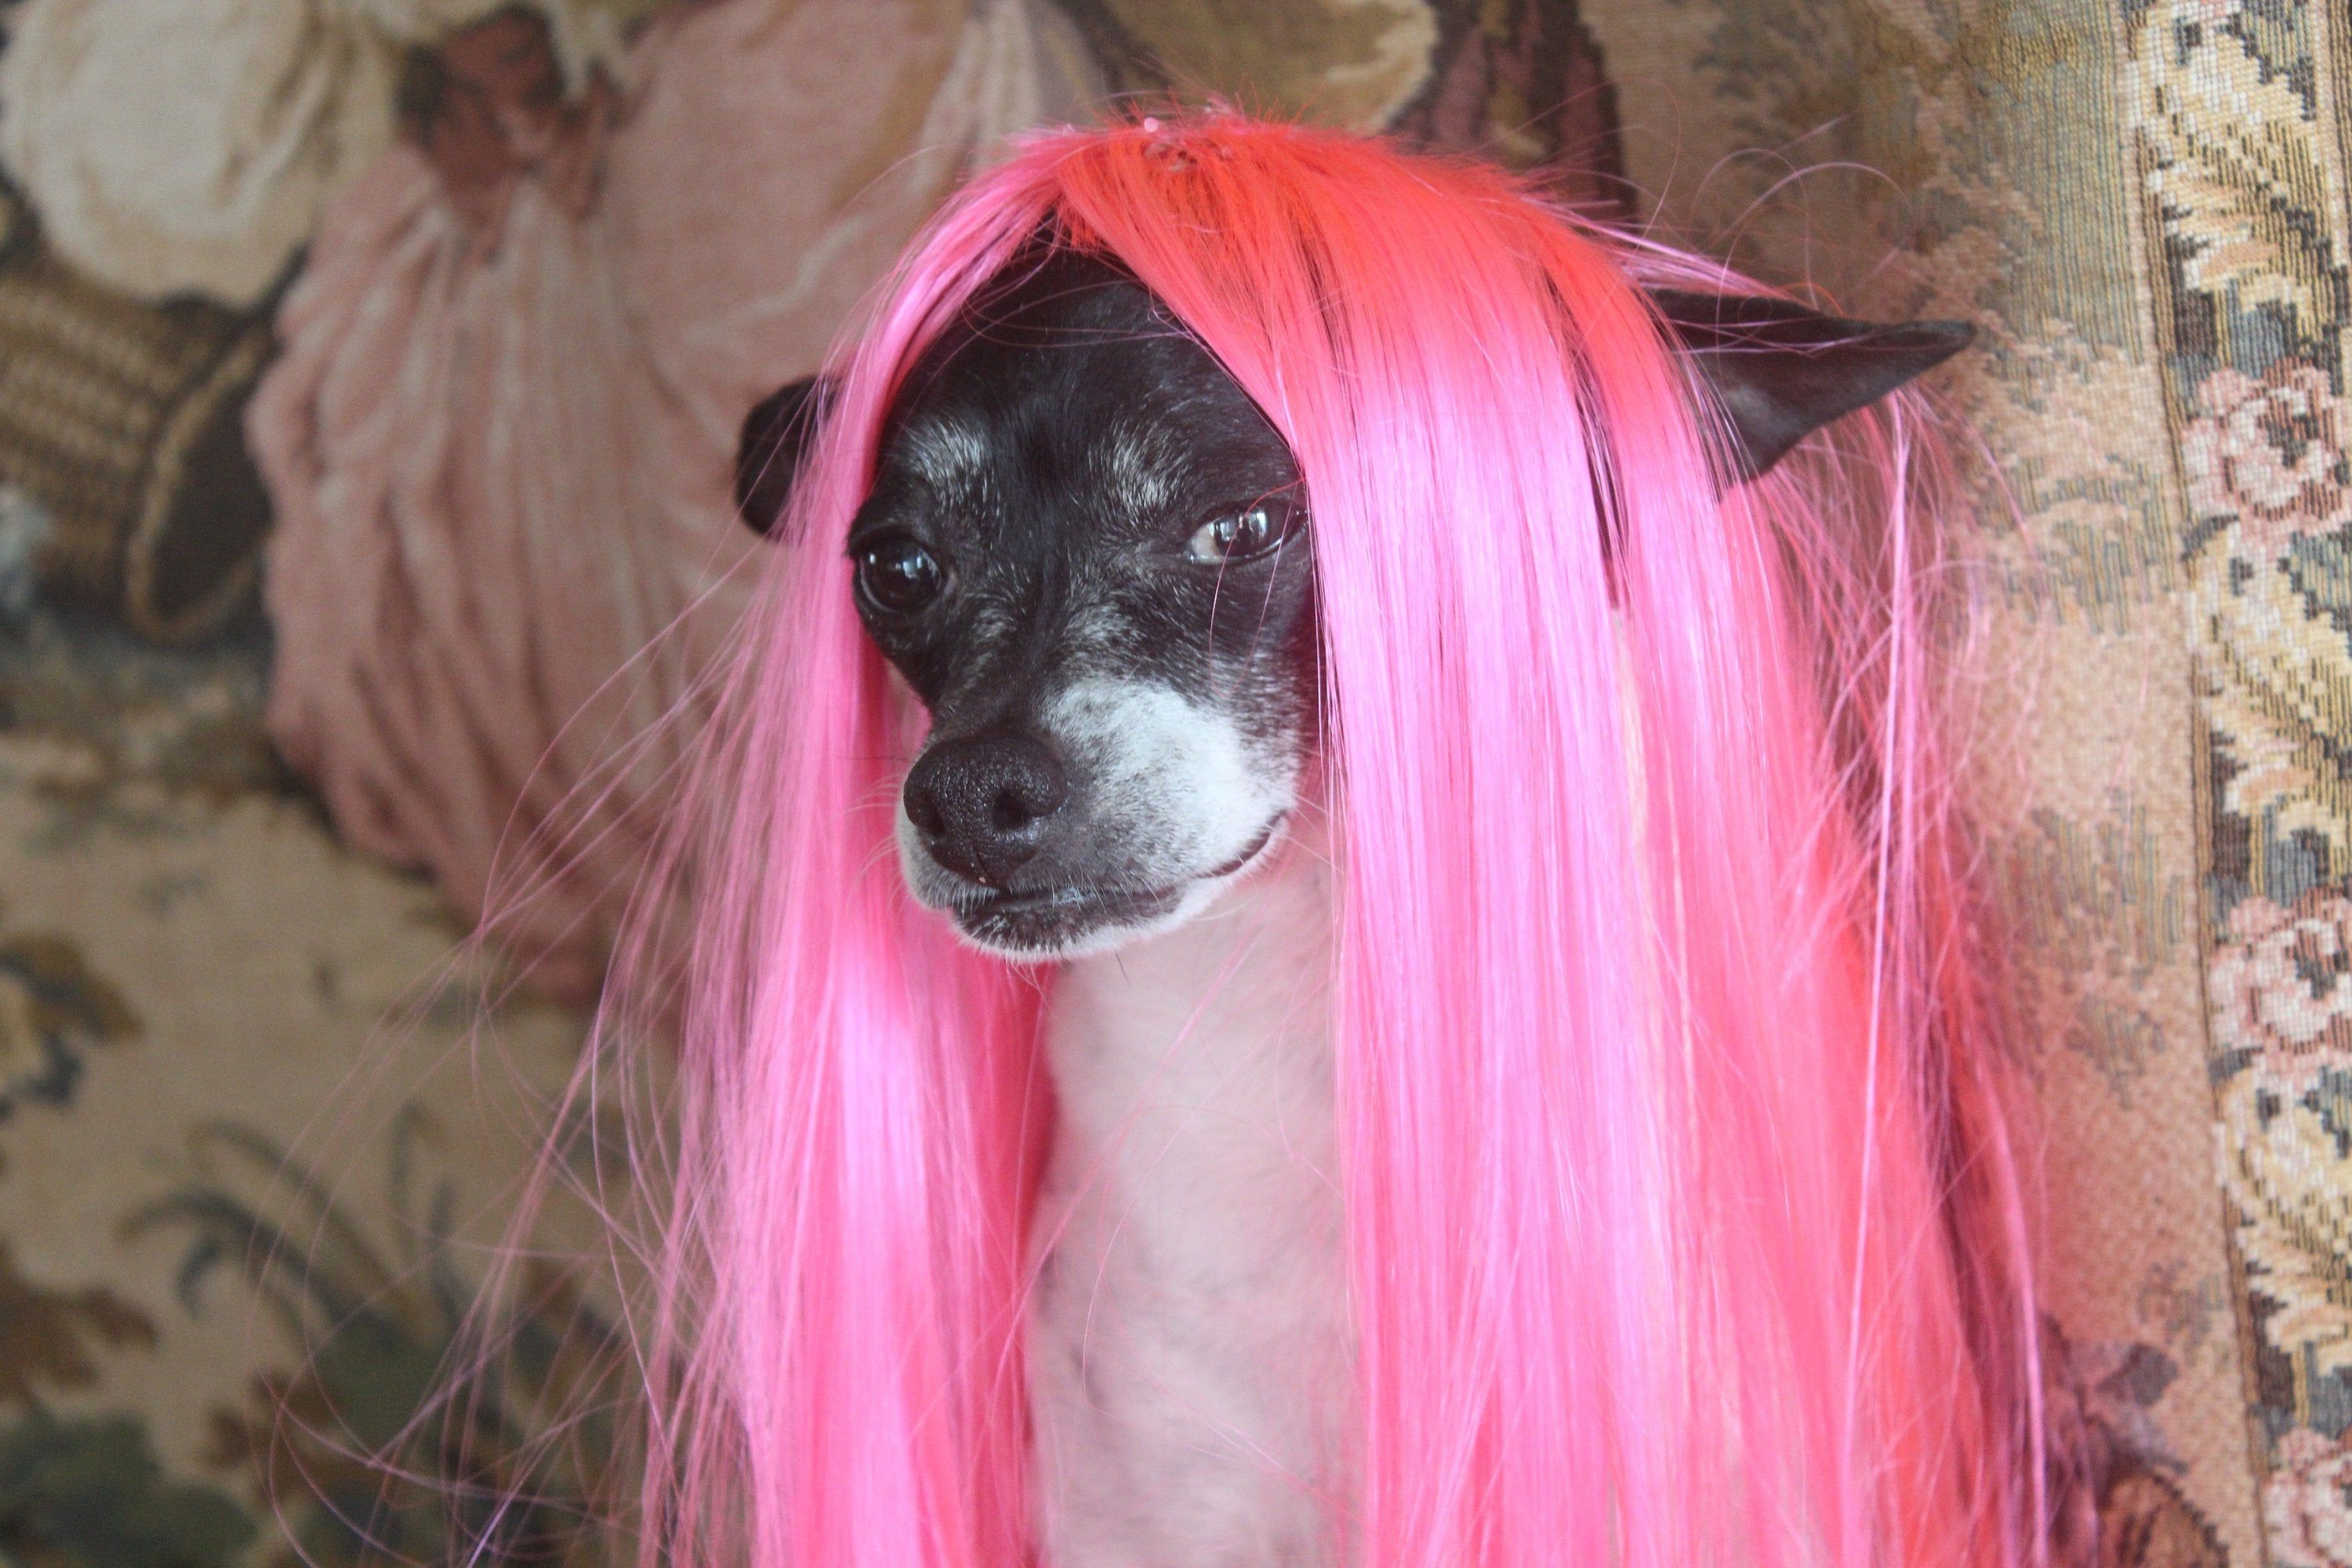 Pet wig hot pink color for dog or cat/Halloween costume | Etsy | Mood pics,  Reaction pictures, Pink dog